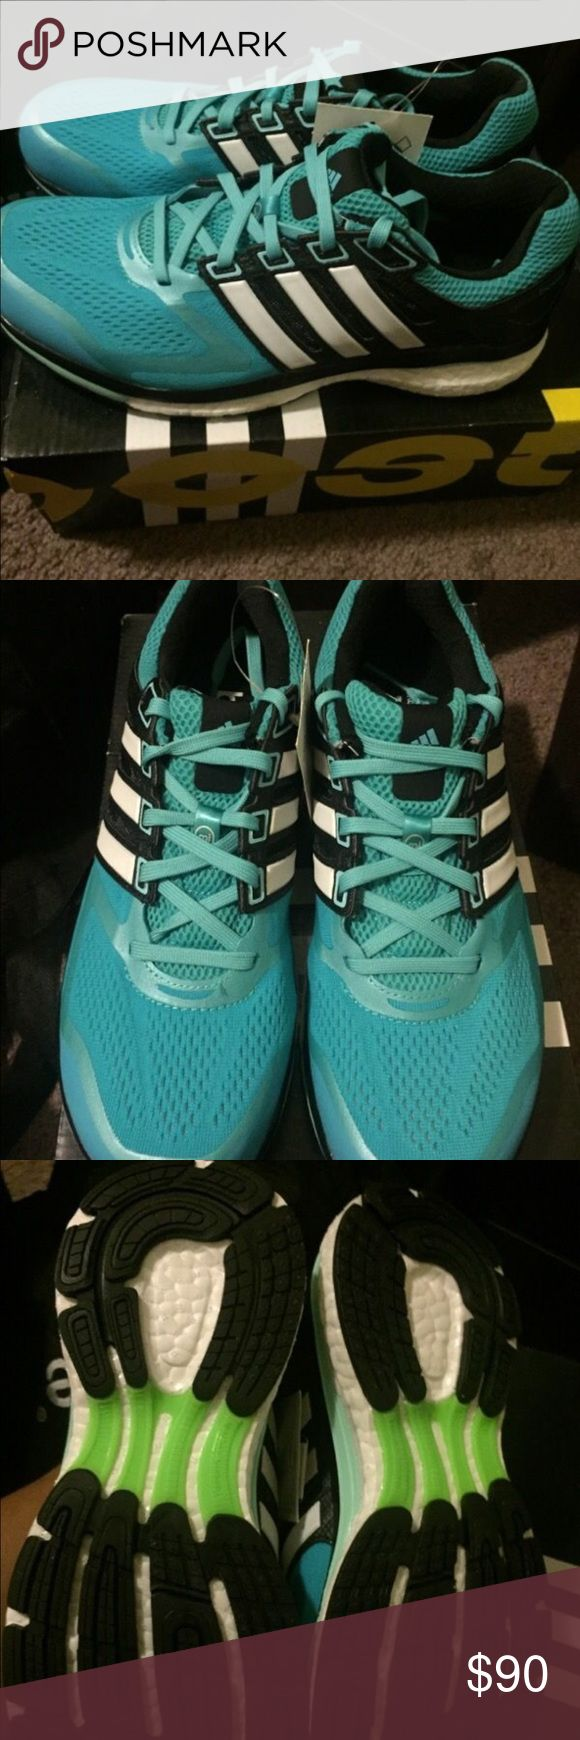 Woman's supernova glide 7 1/2 Woman's adidas supernova glide boost one of the best running shoe with ankle support cushion and boost technology 7 1/2 there sold out online hard to find love this shoe for long runs and gym support Adidas Shoes Sneakers